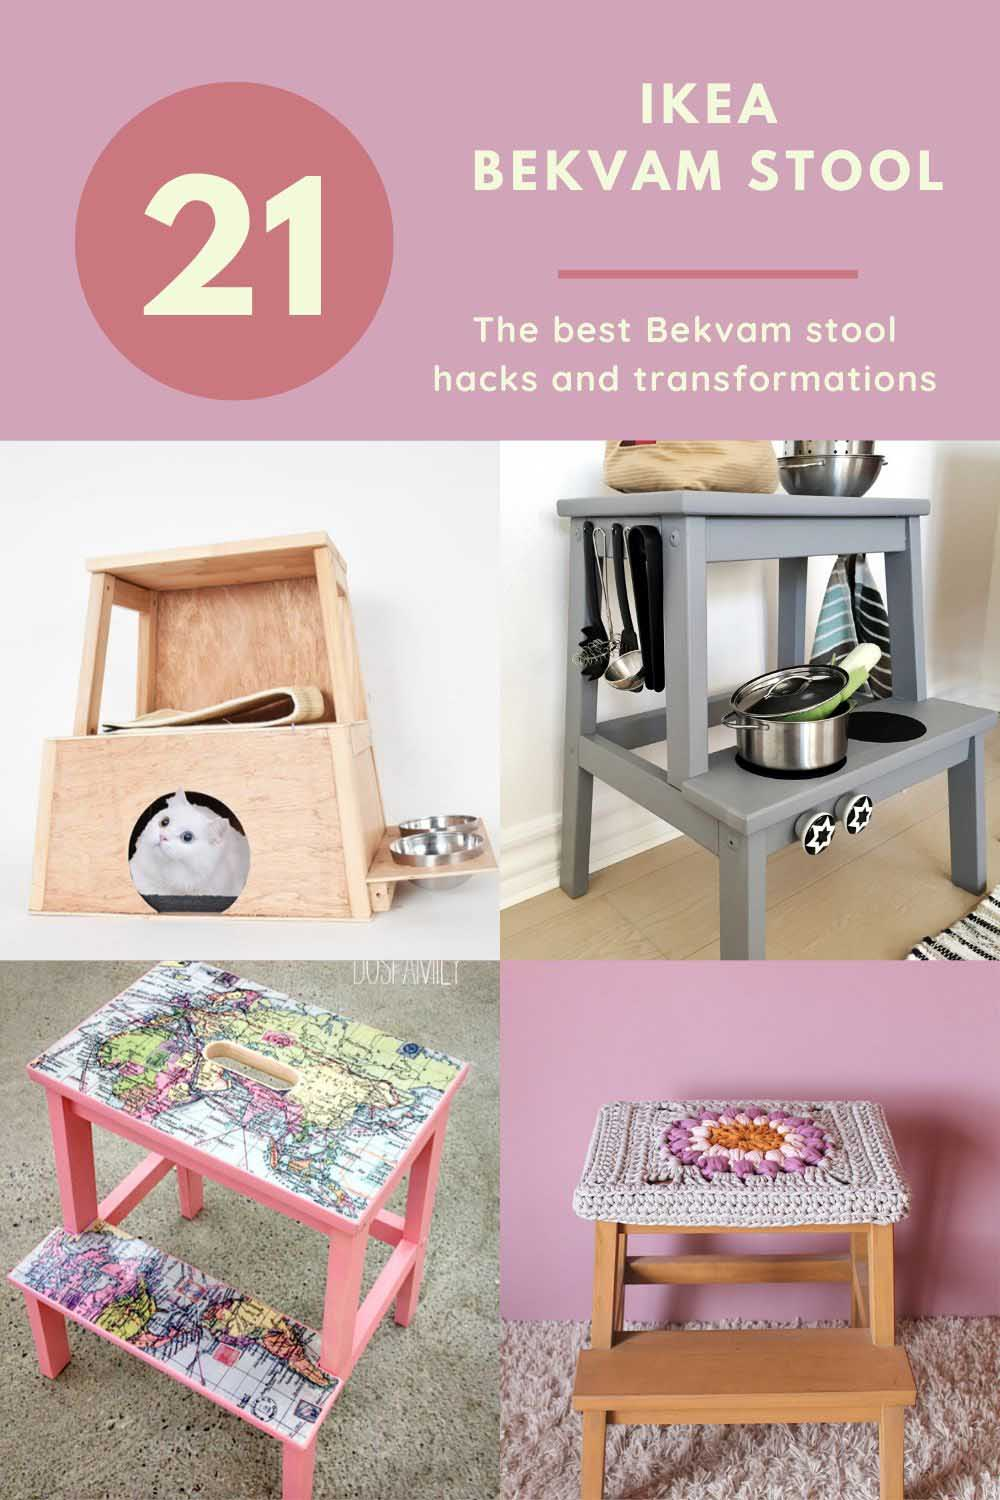 IKEA Bekvam Stool hacks